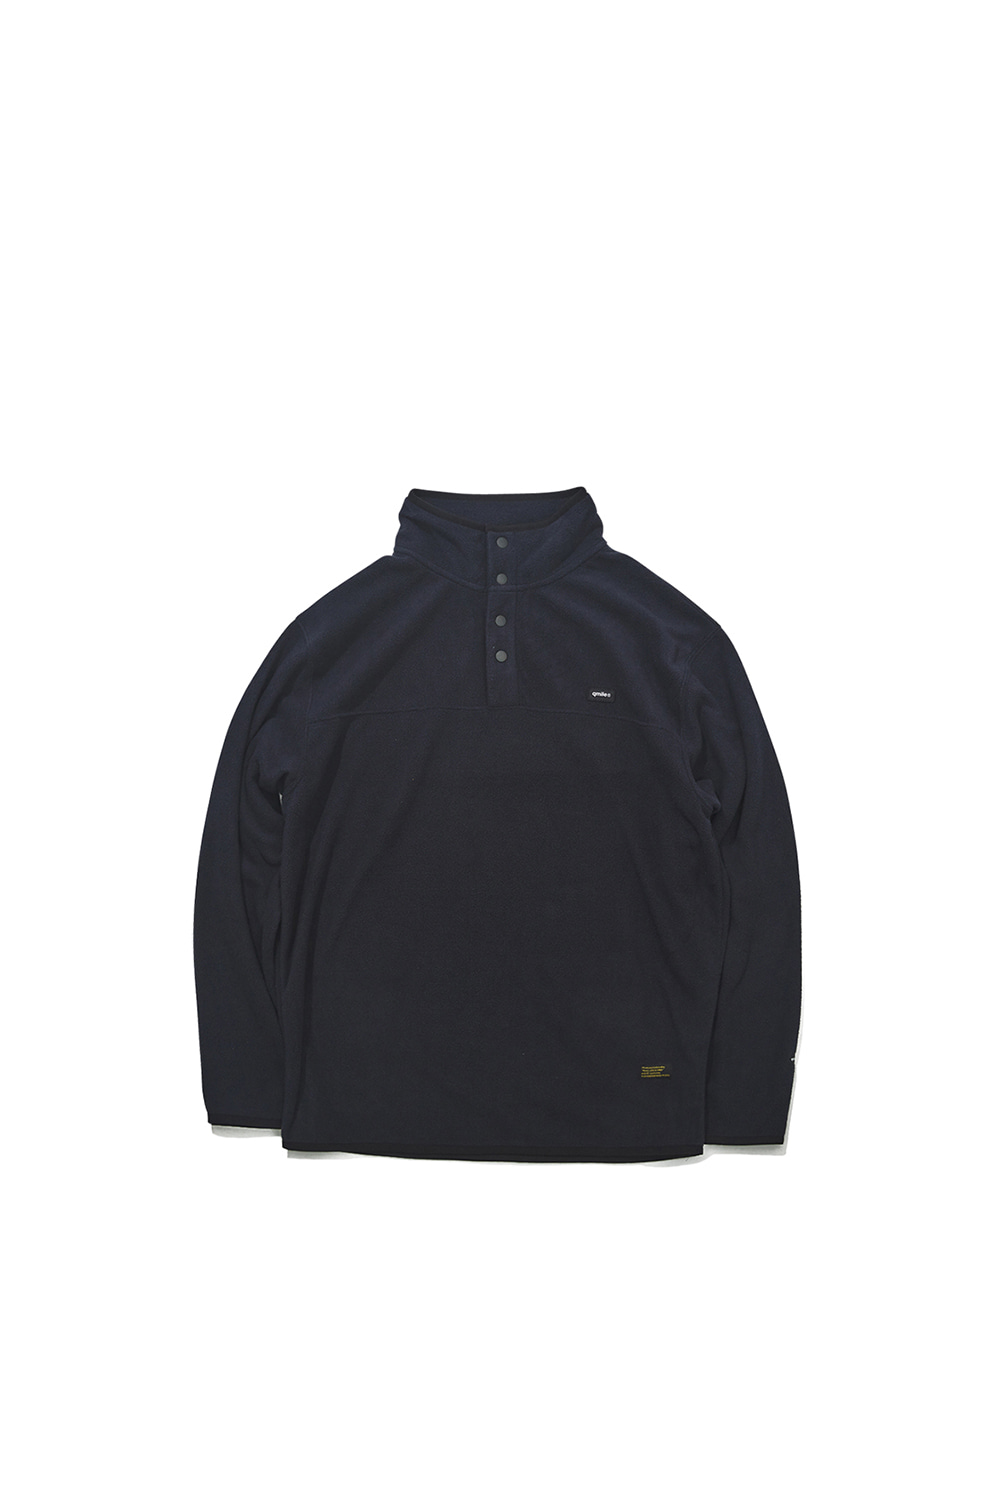 512 FLEECE PULLOVER 	NAVY